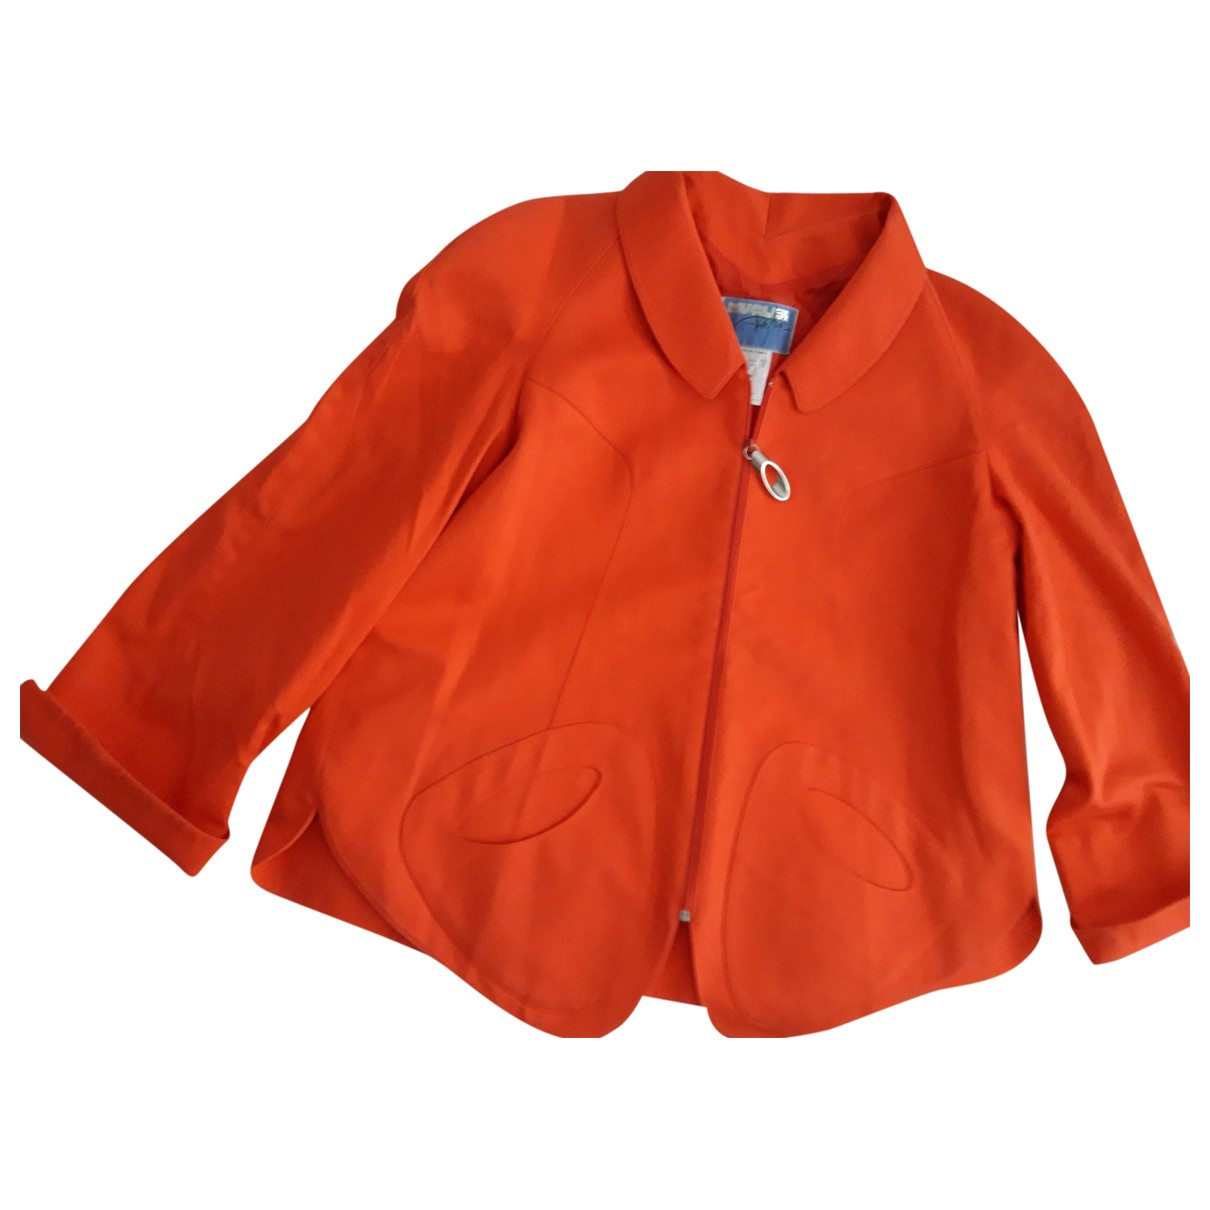 Thierry Mugler \N Orange Cotton jacket for Women 42 FR